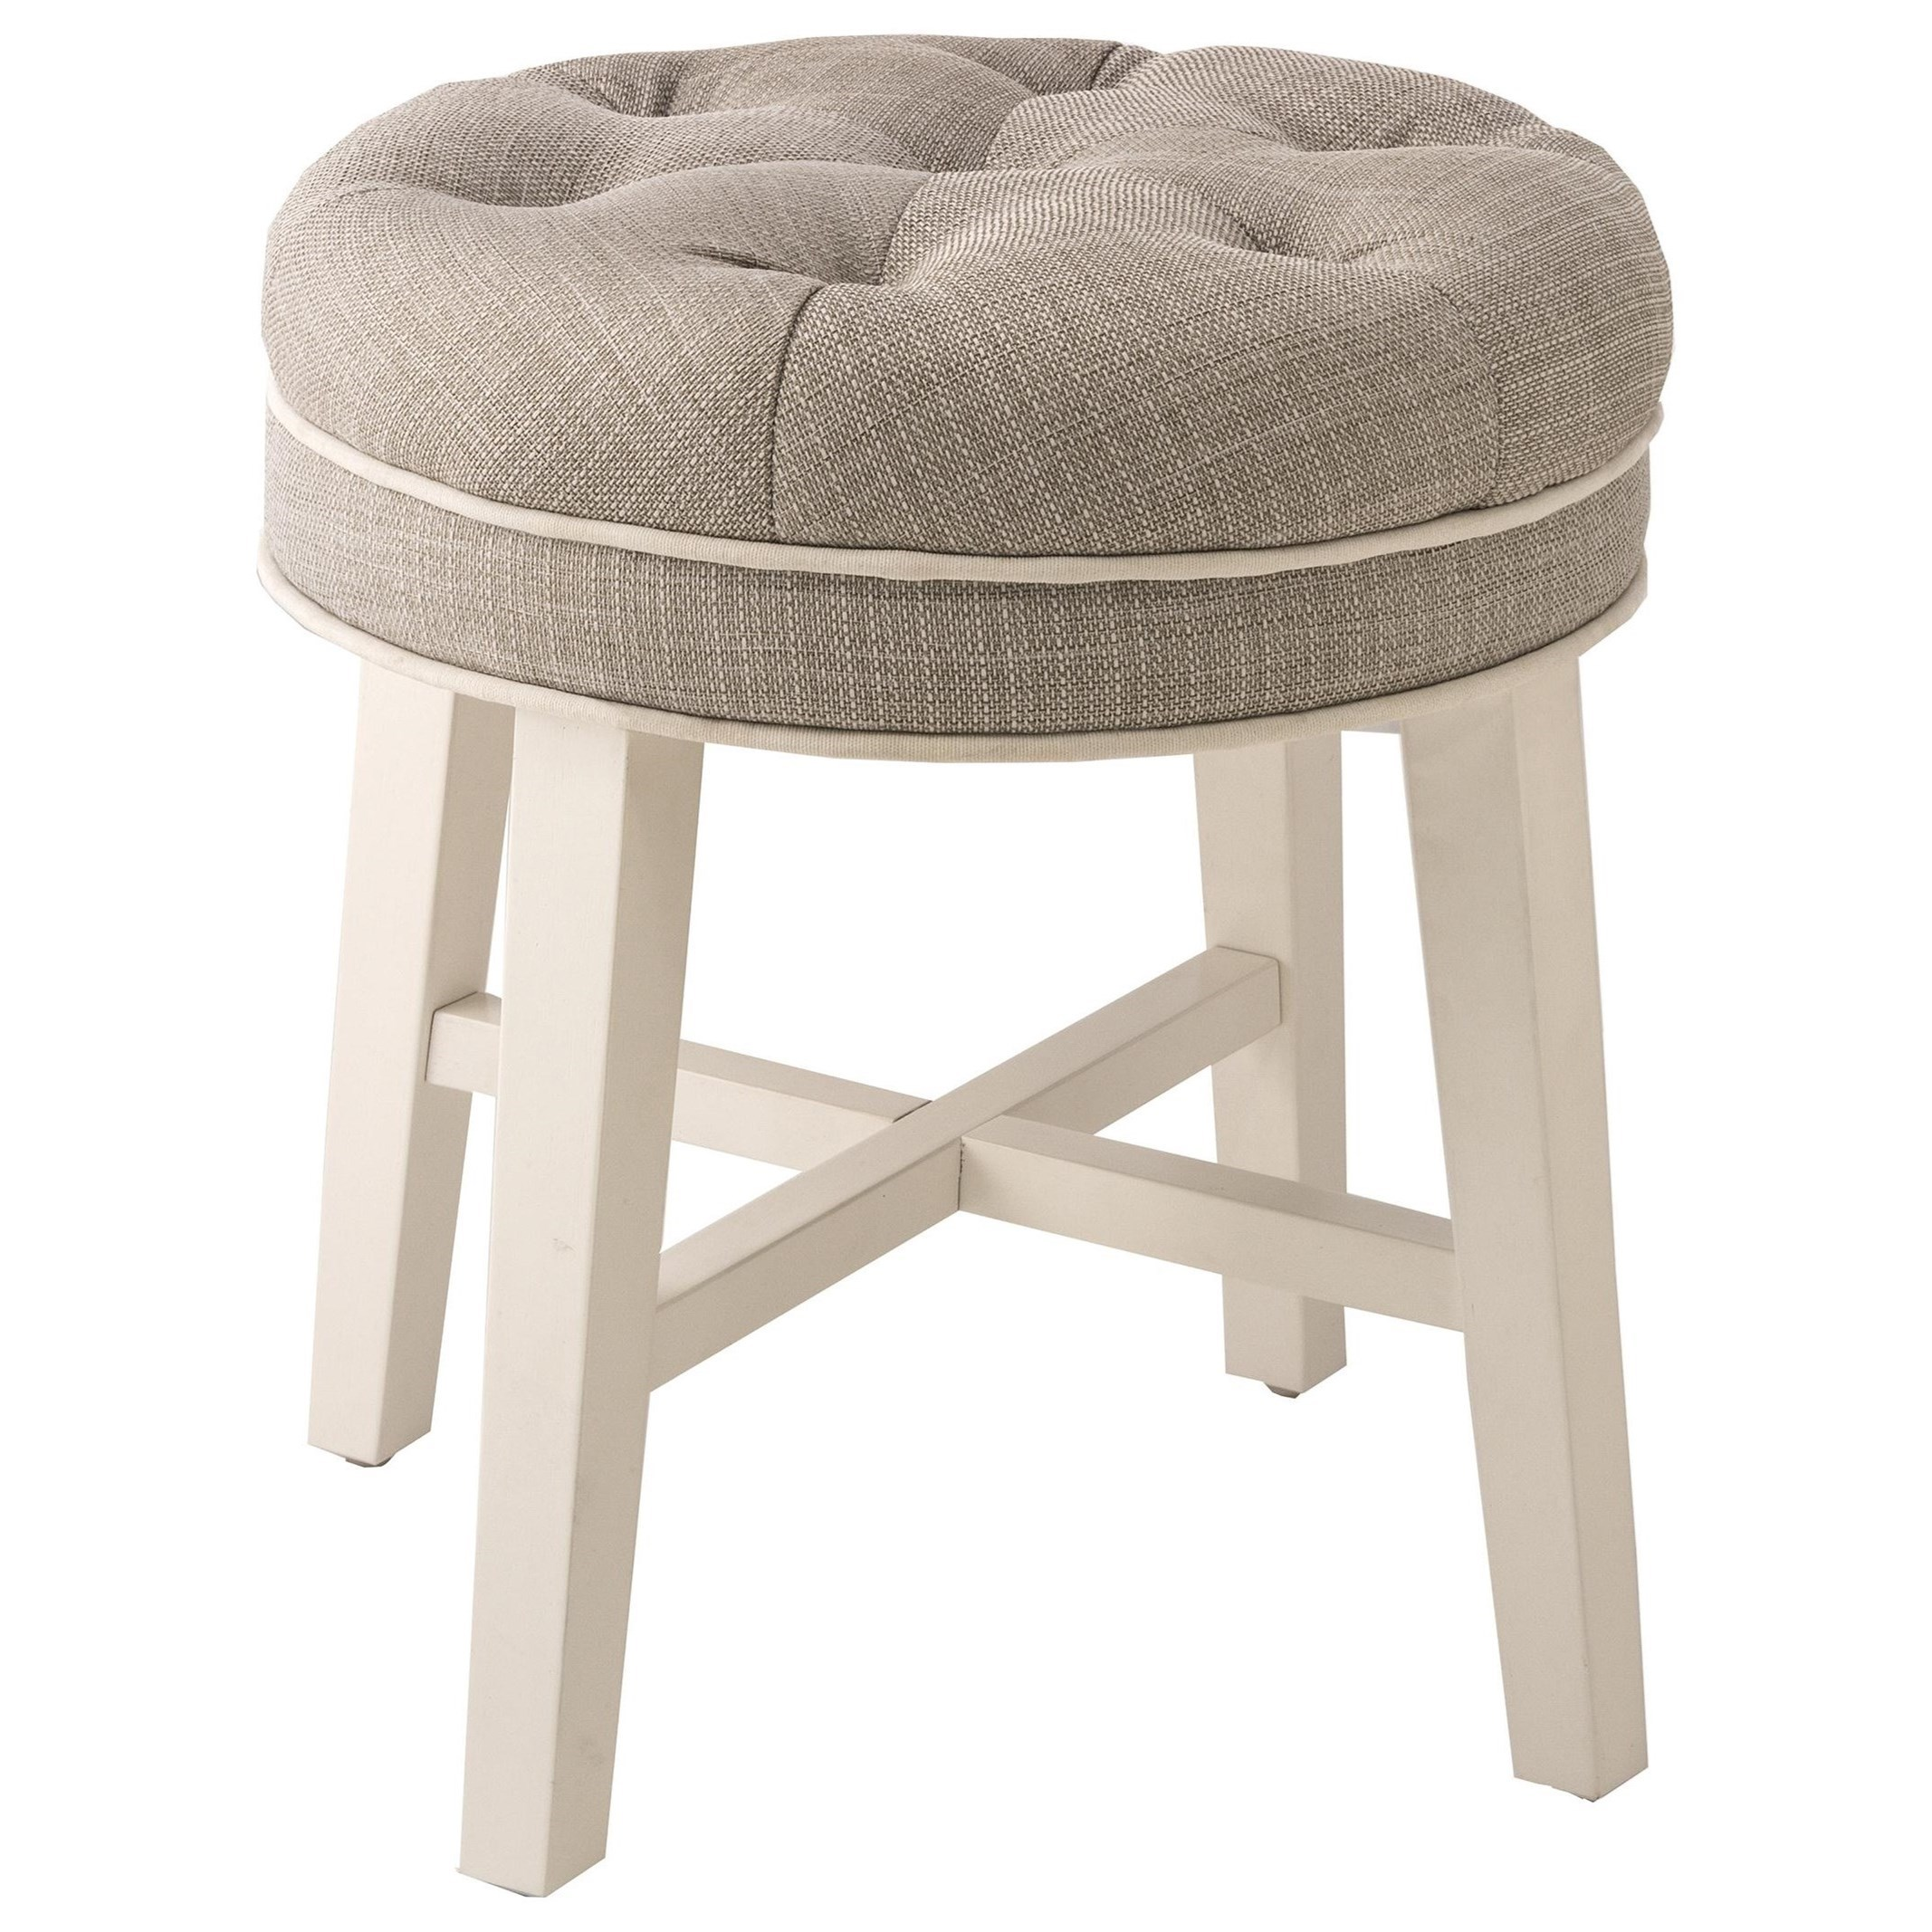 Tufted Vanity Chair Vanity Stools Sophia Vanity Stool With Fabric Seat By Hillsdale At Dunk Bright Furniture